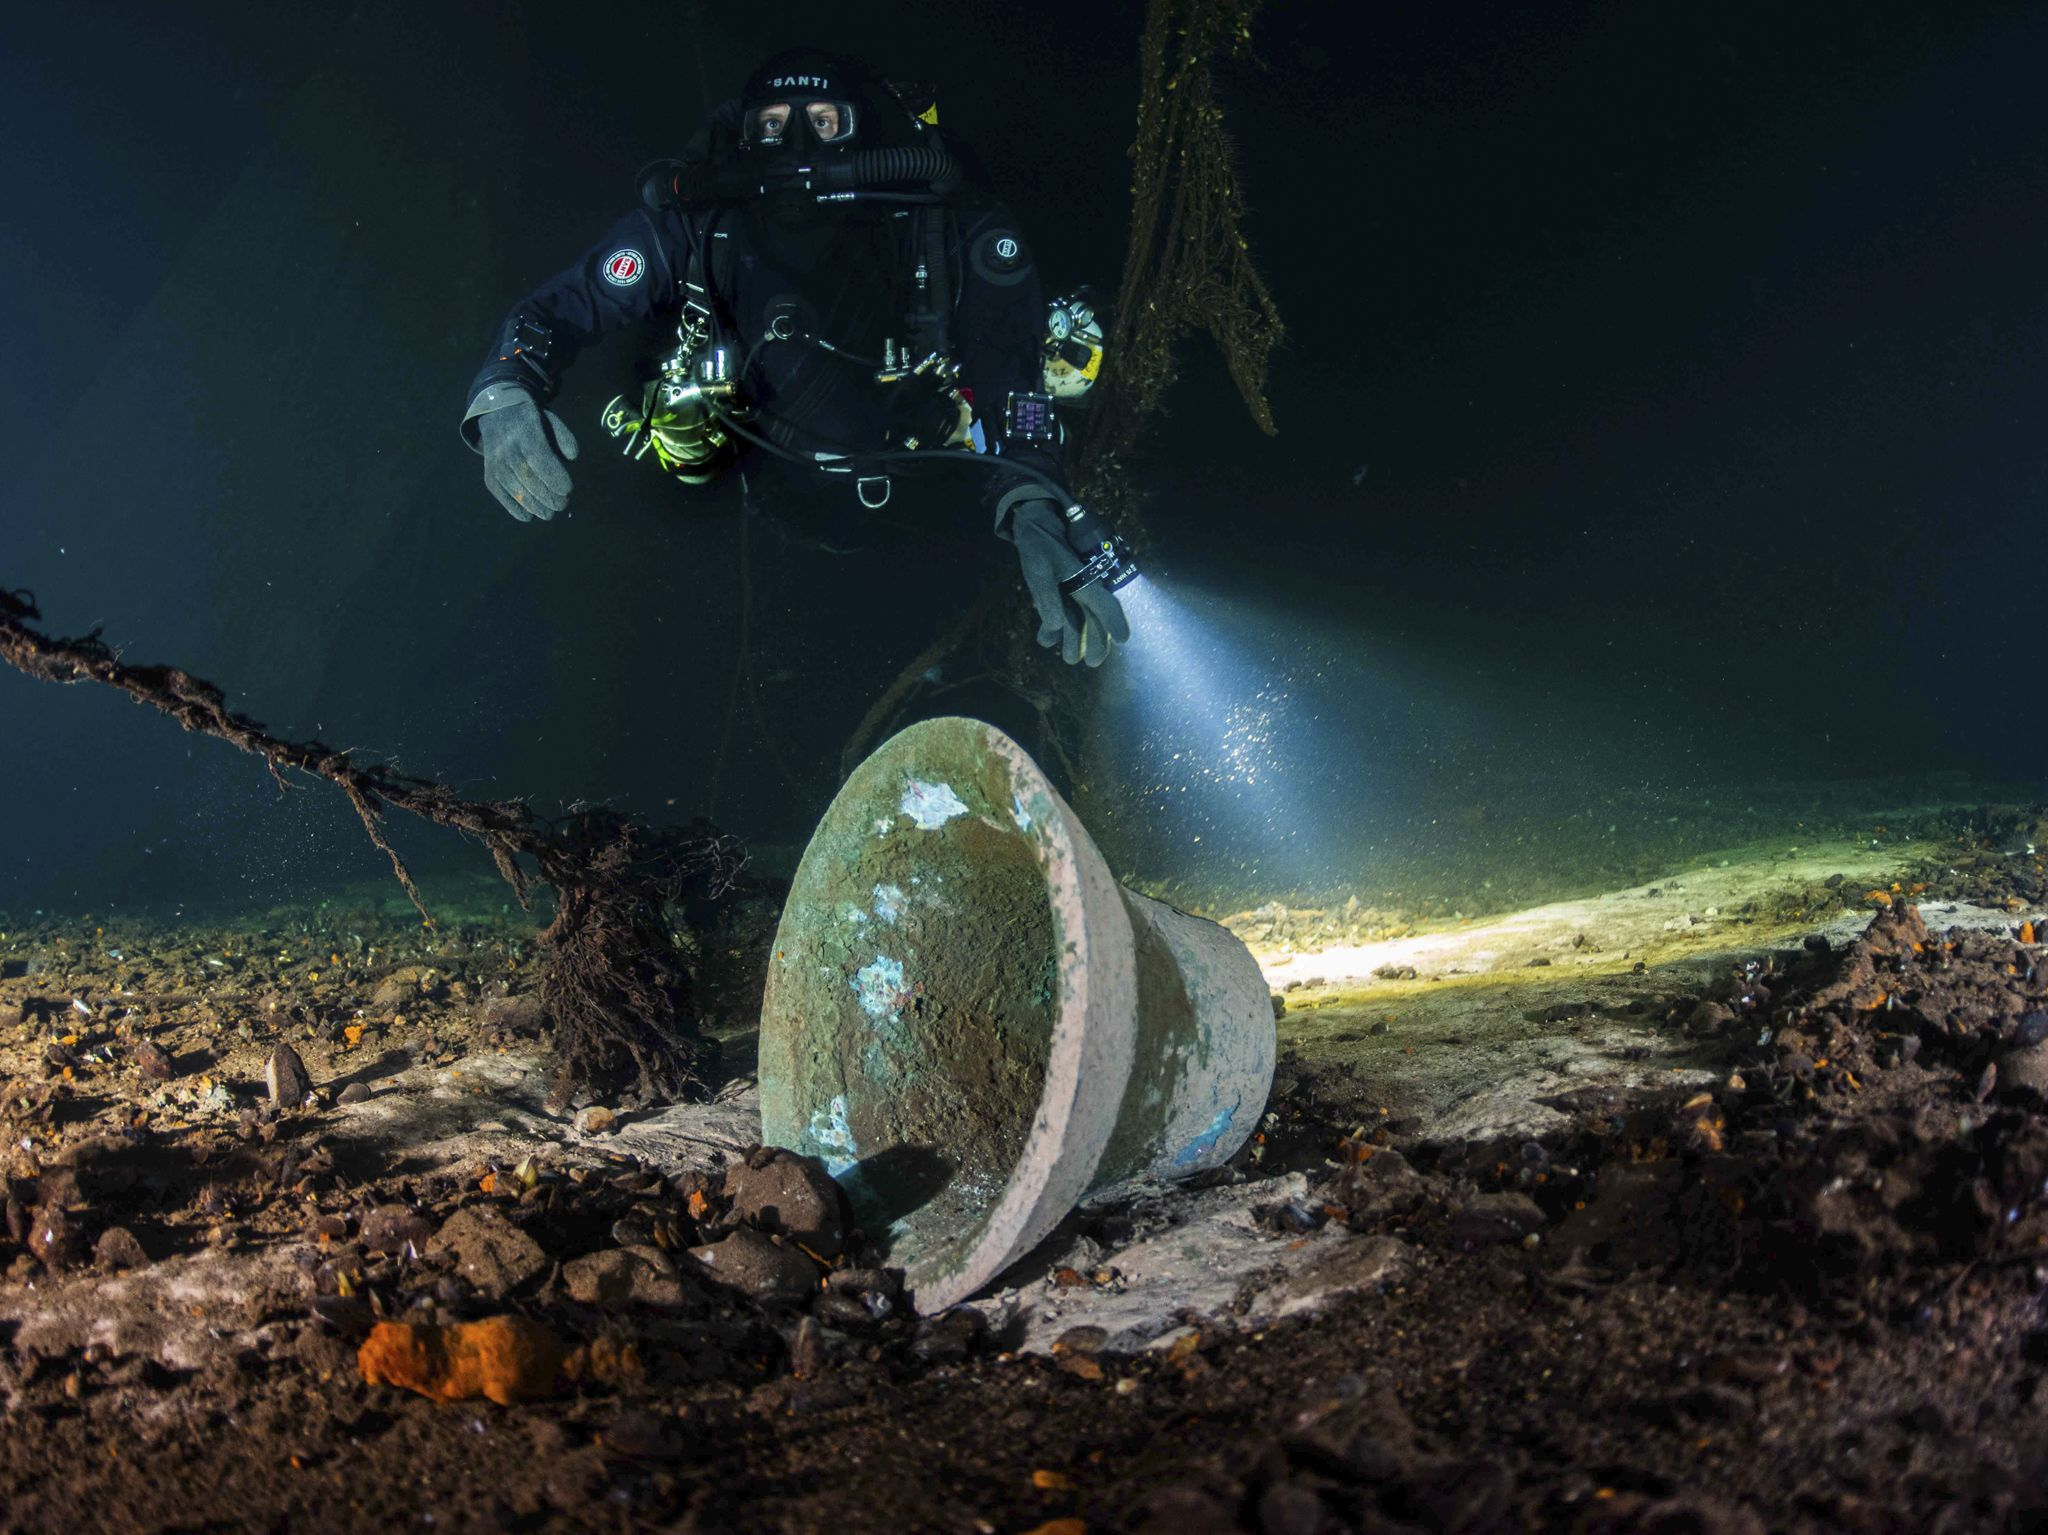 A diver inspects the bell of the Steuben, found after over 70 years by Tomasz Stachura in the... [Photo of the day - October 2020]